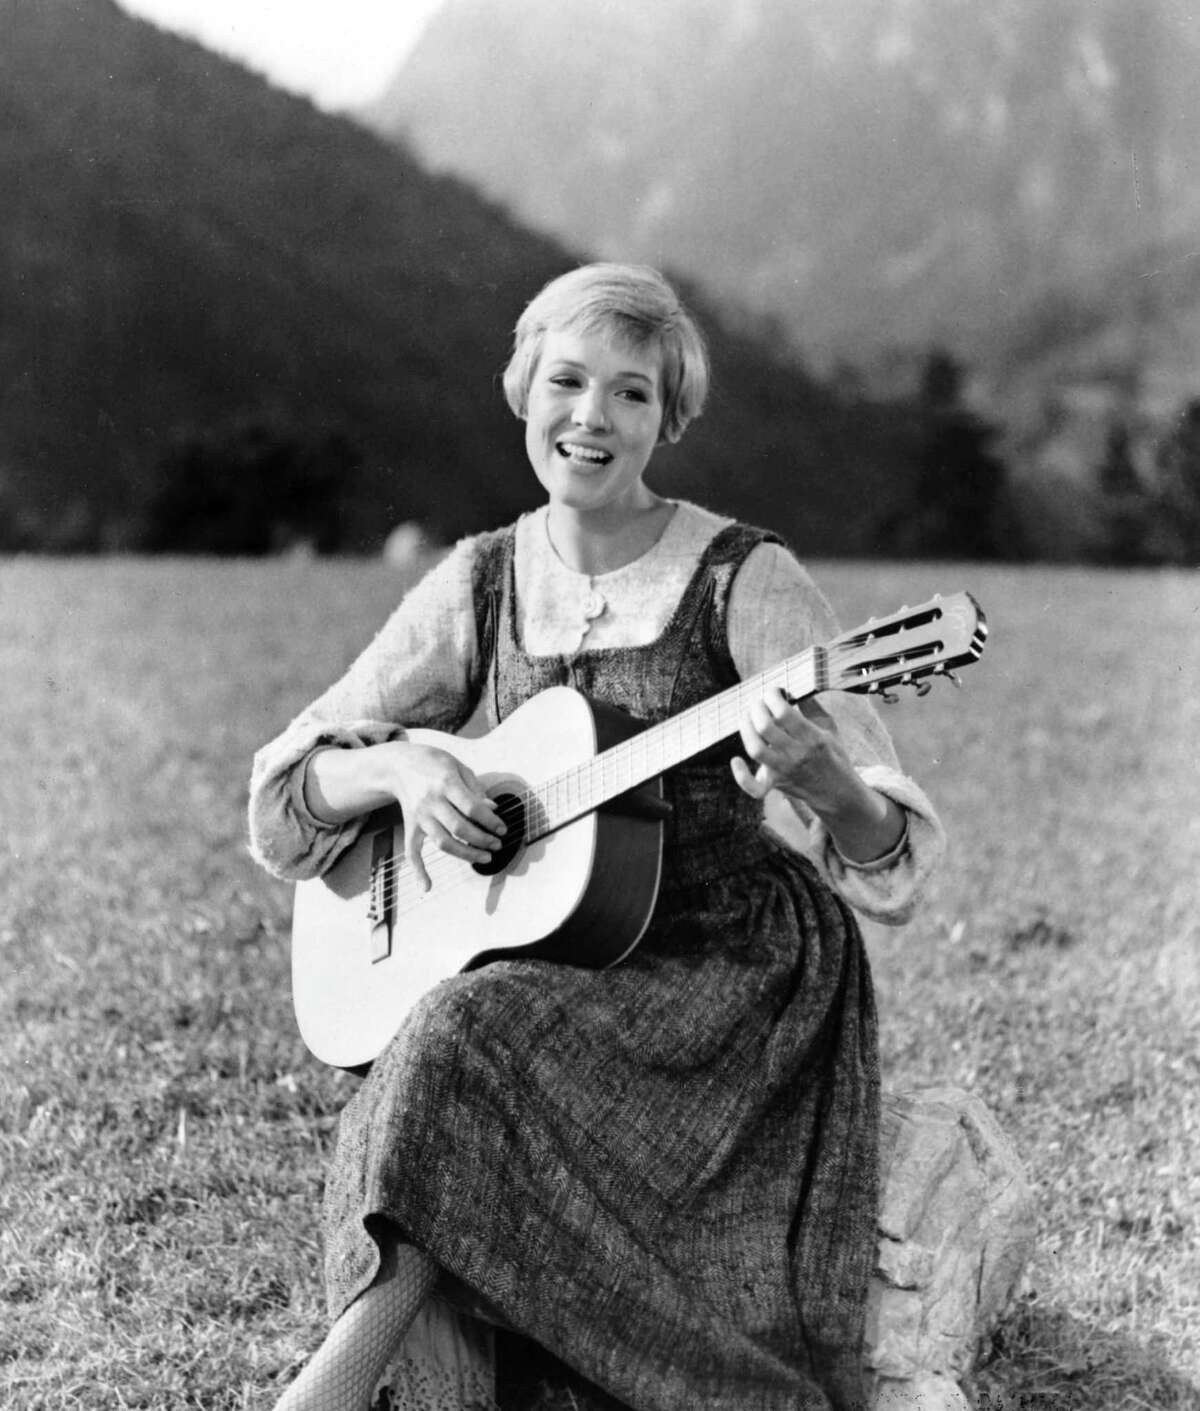 Julie Andrews in the 1965 movie musical THE SOUND OF MUSIC. HOUCHRON CAPTION (12/26/2002): PUT YOUR PIPES UP AGAINST JULIE ANDREWS' IN THE SING-A-LONG SOUND OF MUSIC IN GALVESTON.